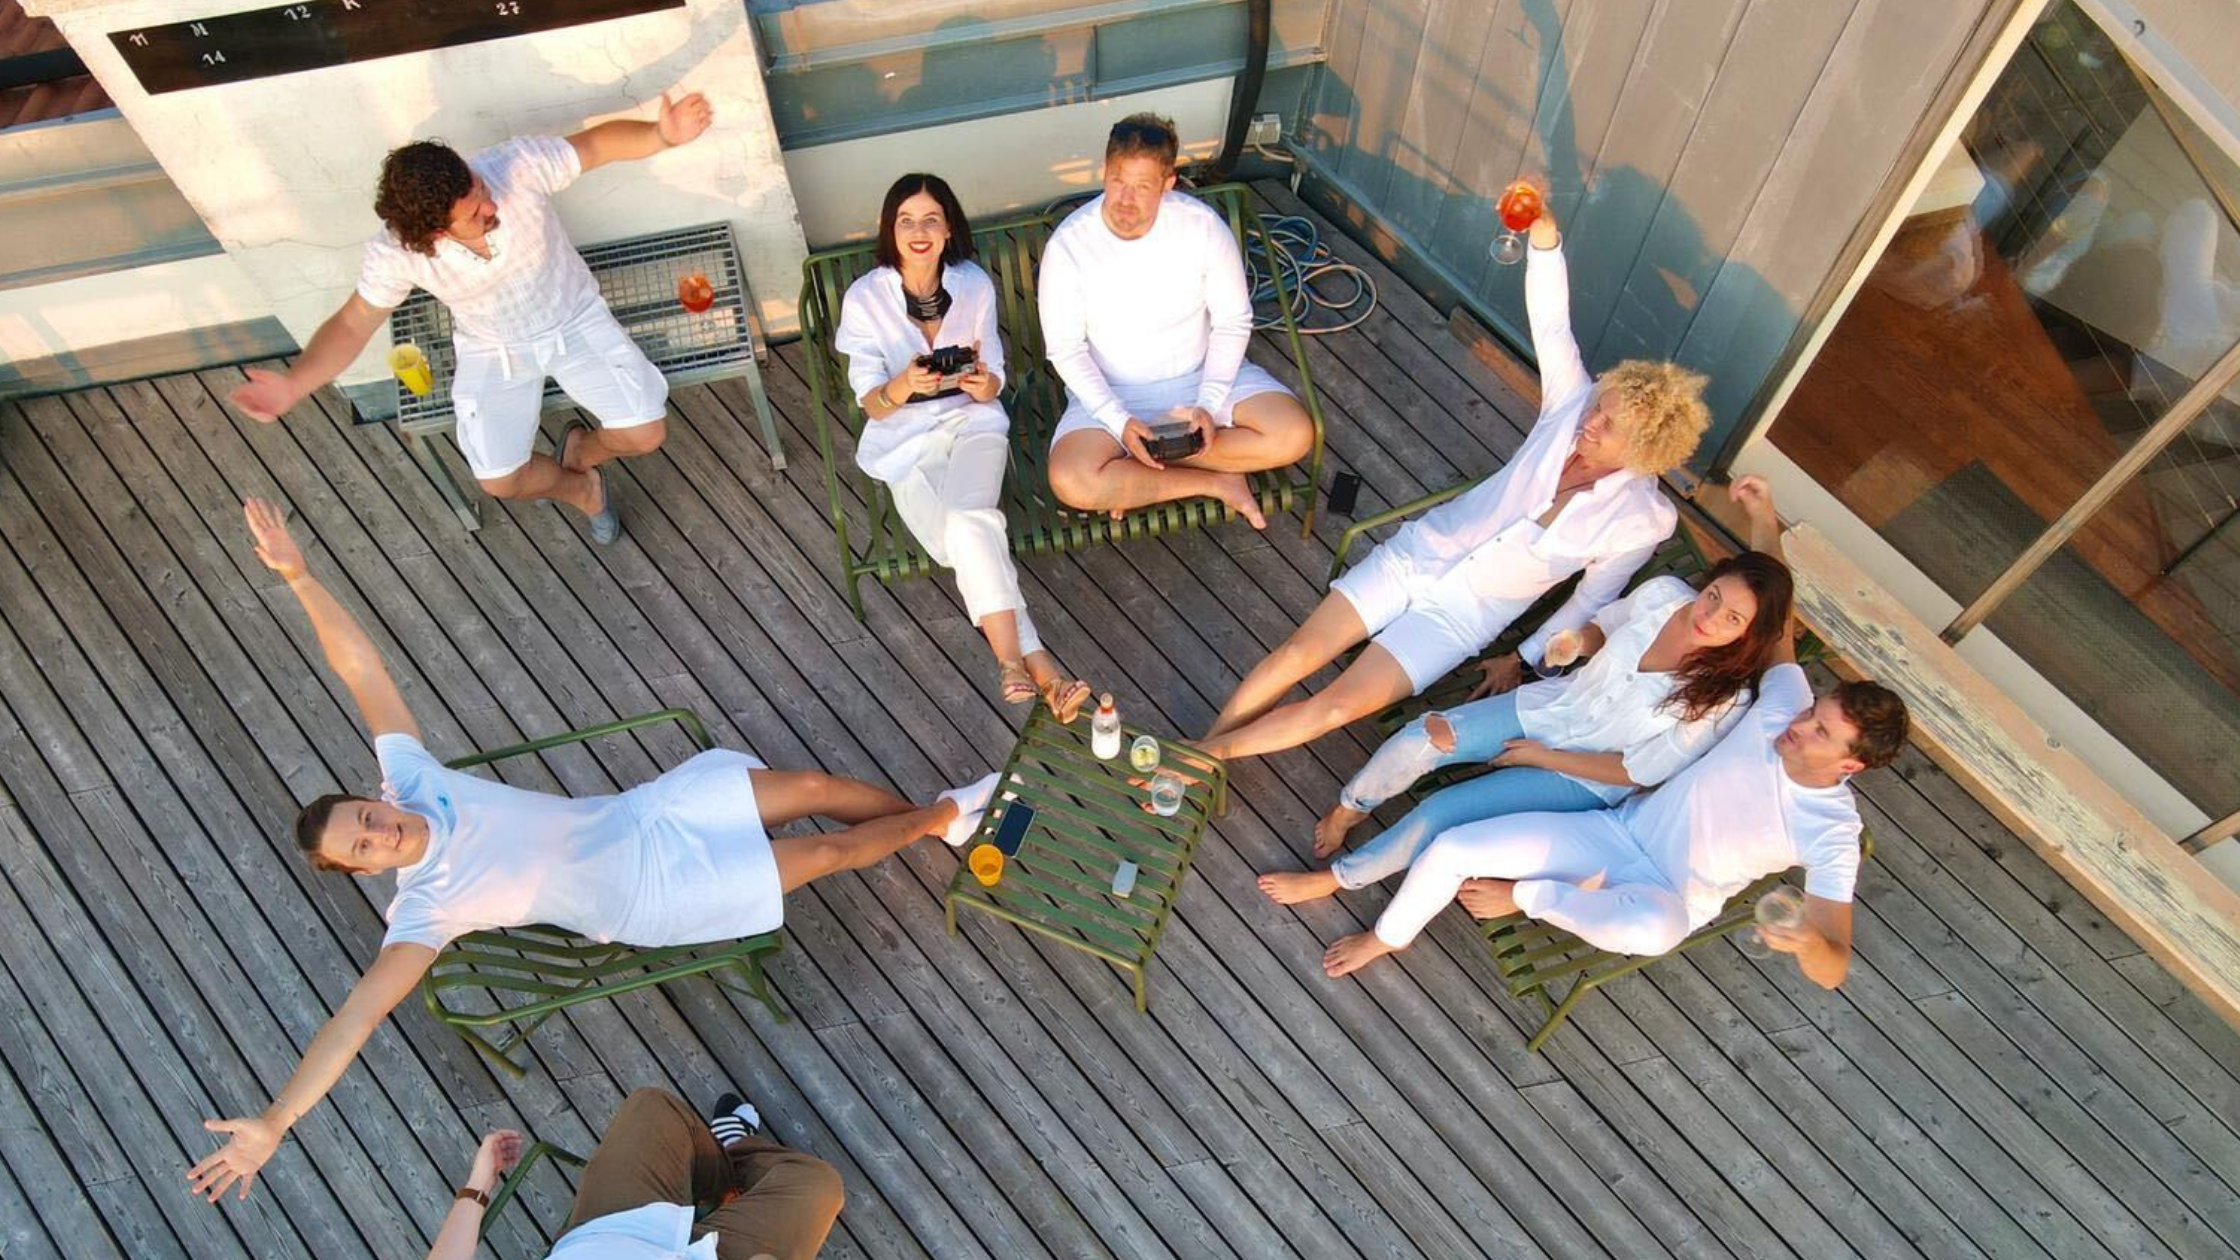 Hygge on a patio with a drone